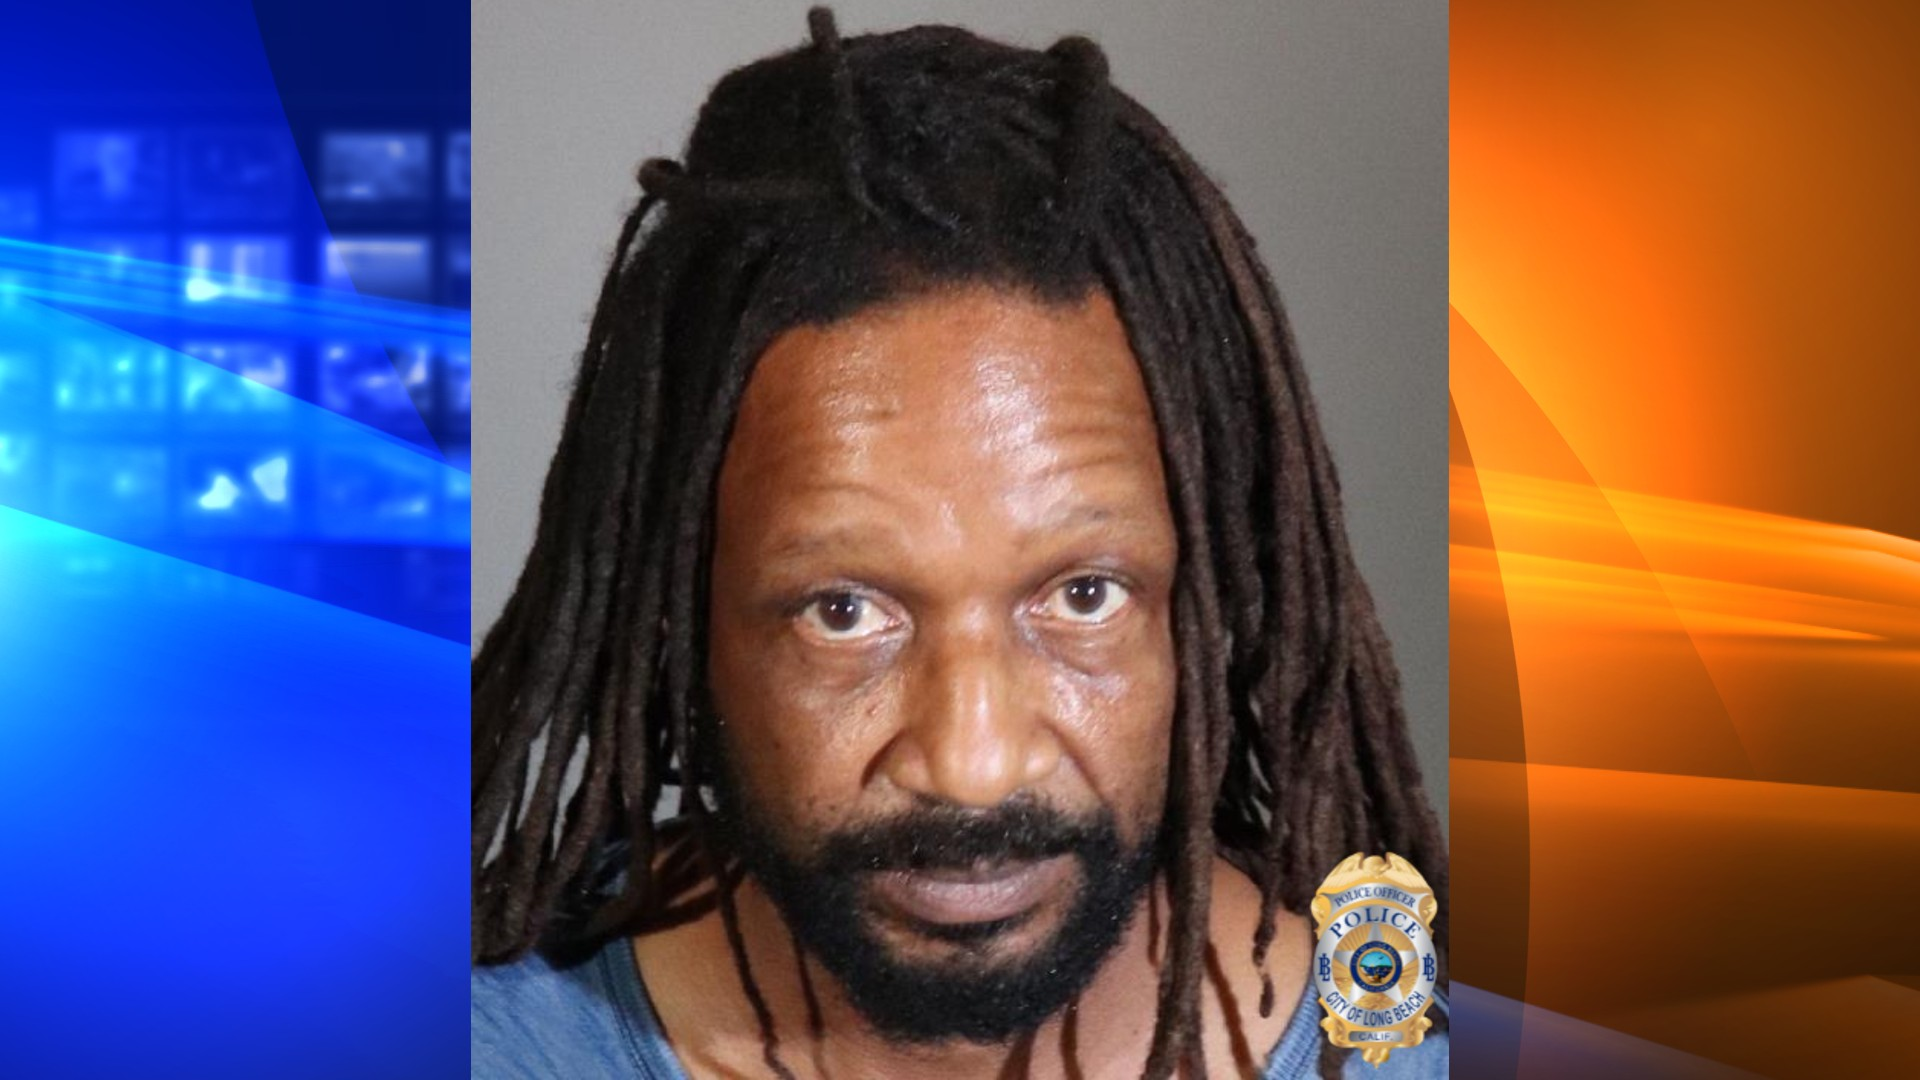 Bryan Scott is seen in a booking photo released by the Long Beach Police Department on June 3, 2021.